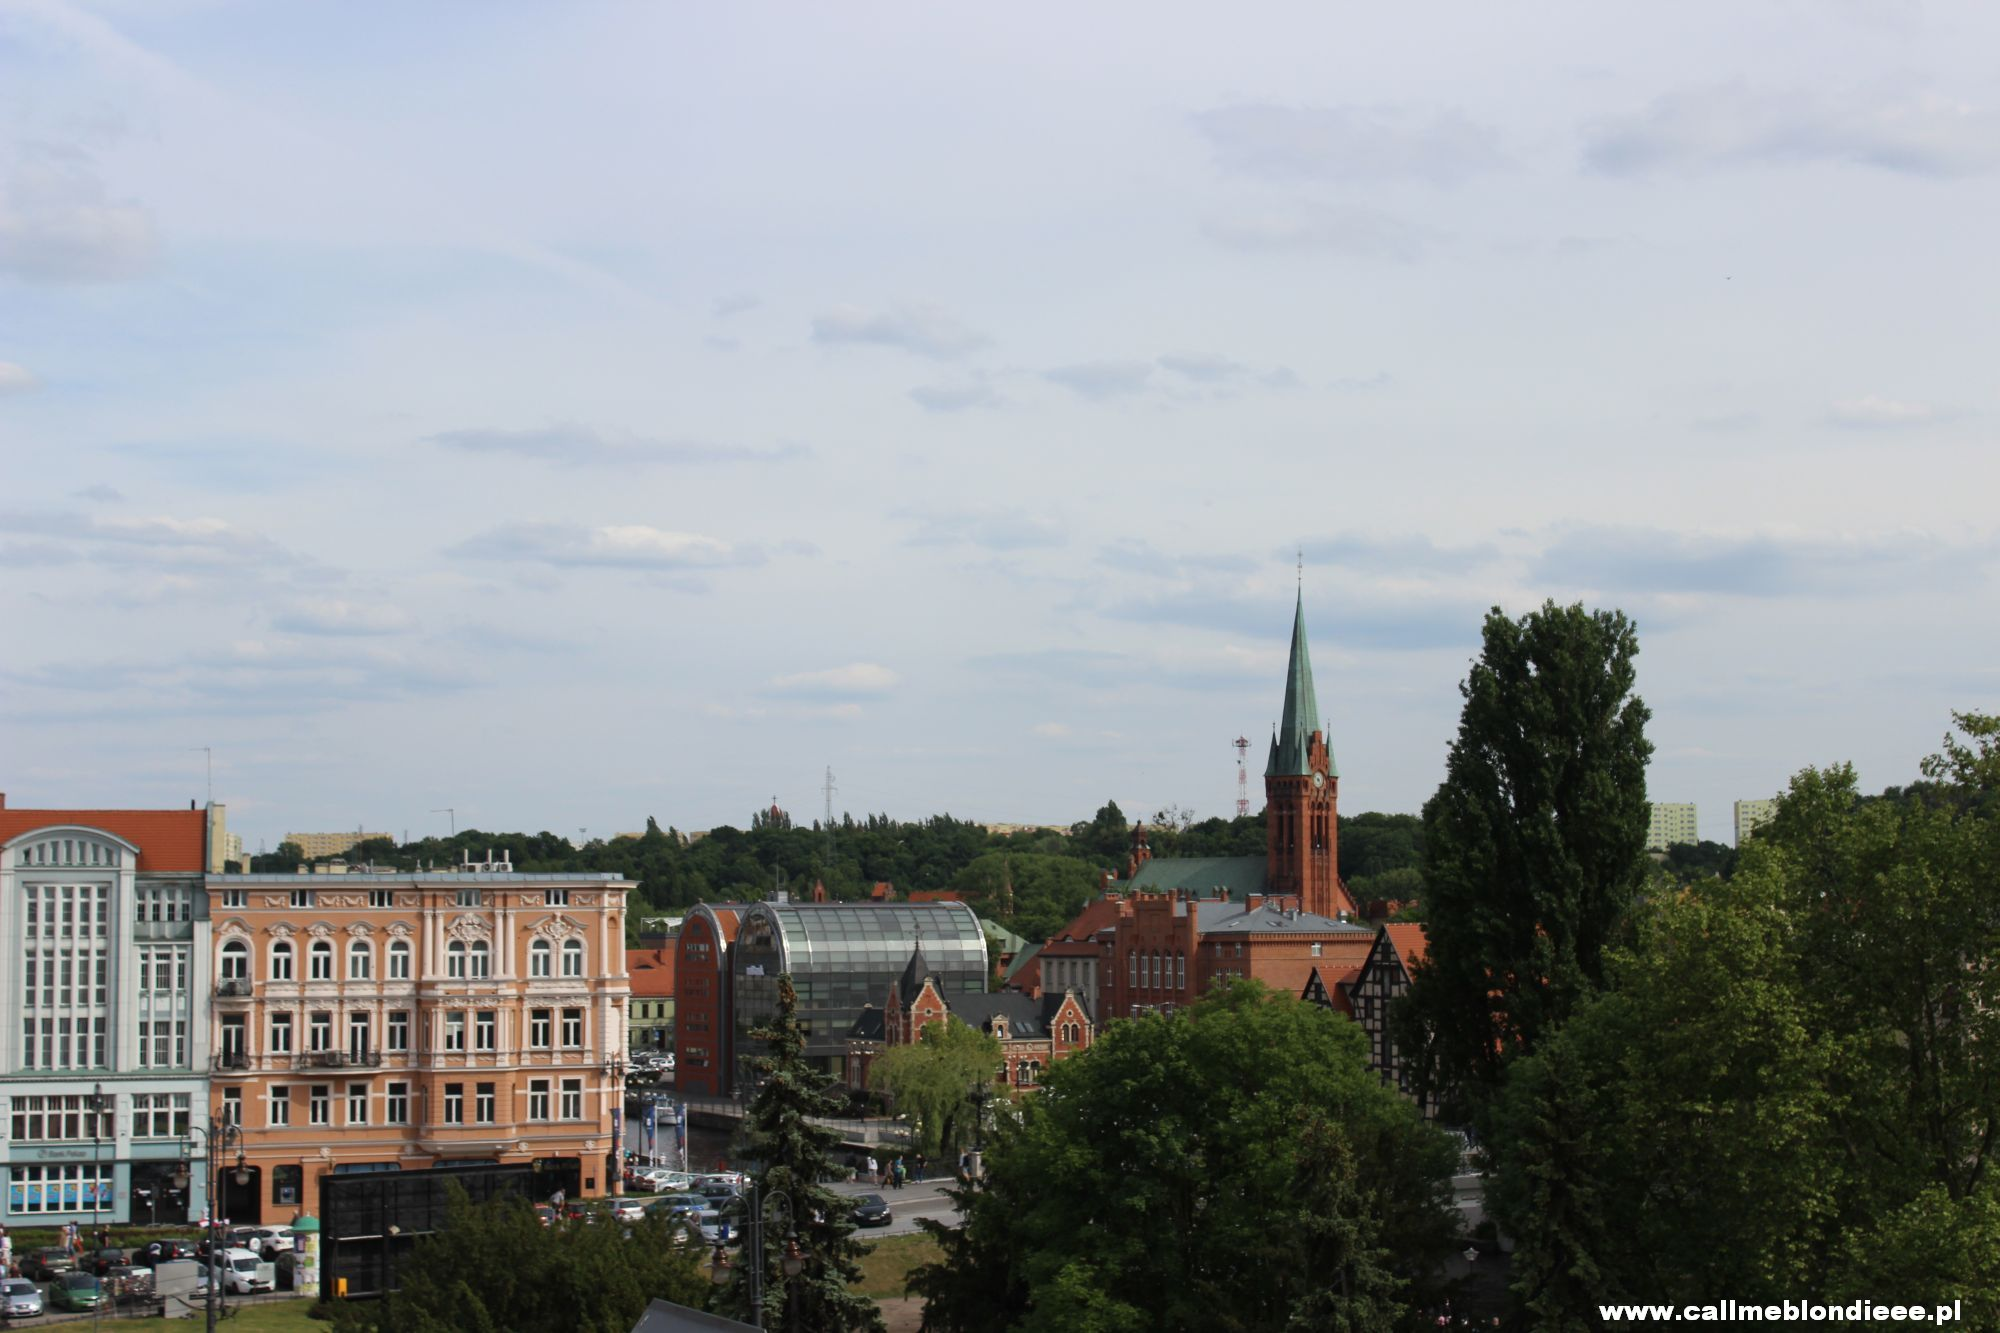 View of the day - Bydgoszcz